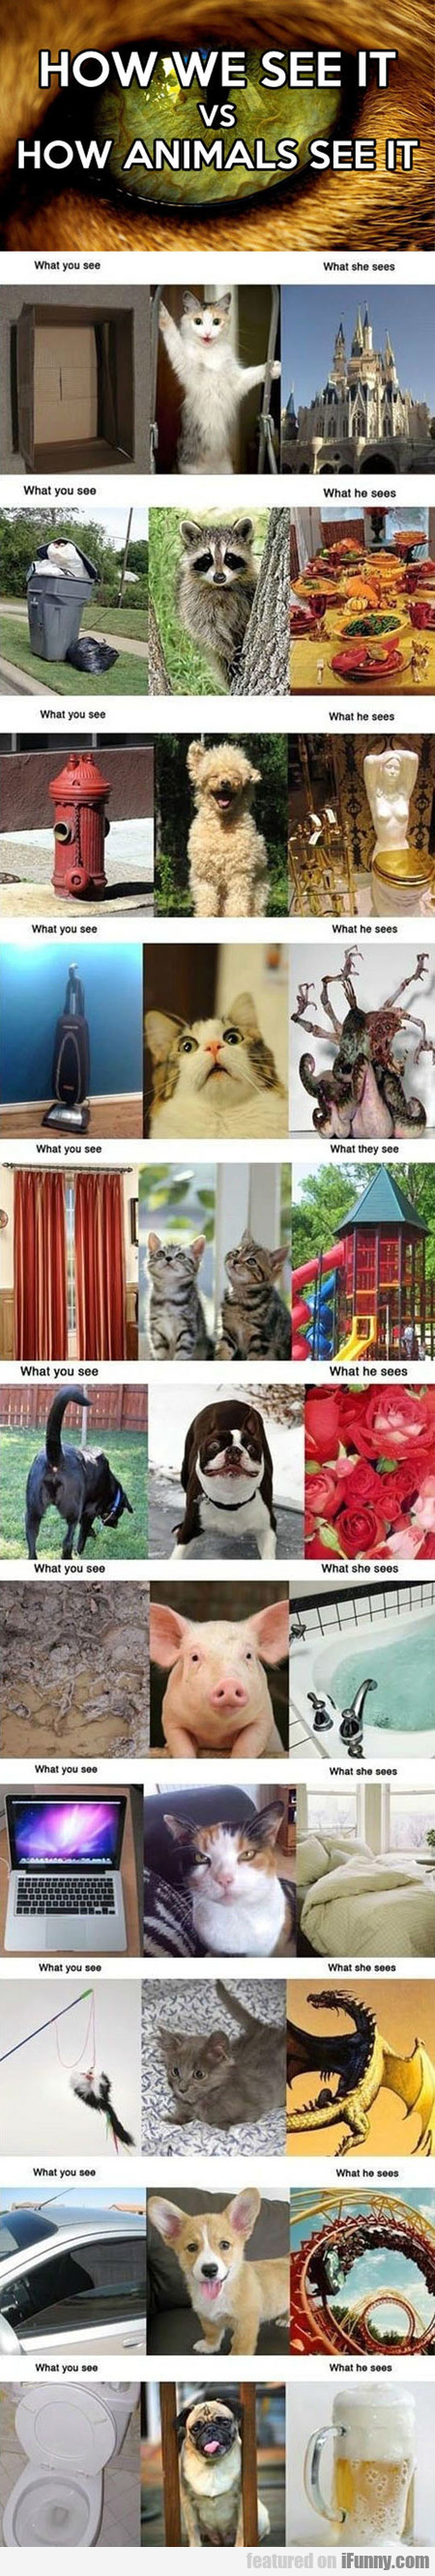 How We See It Vs How Animals See It